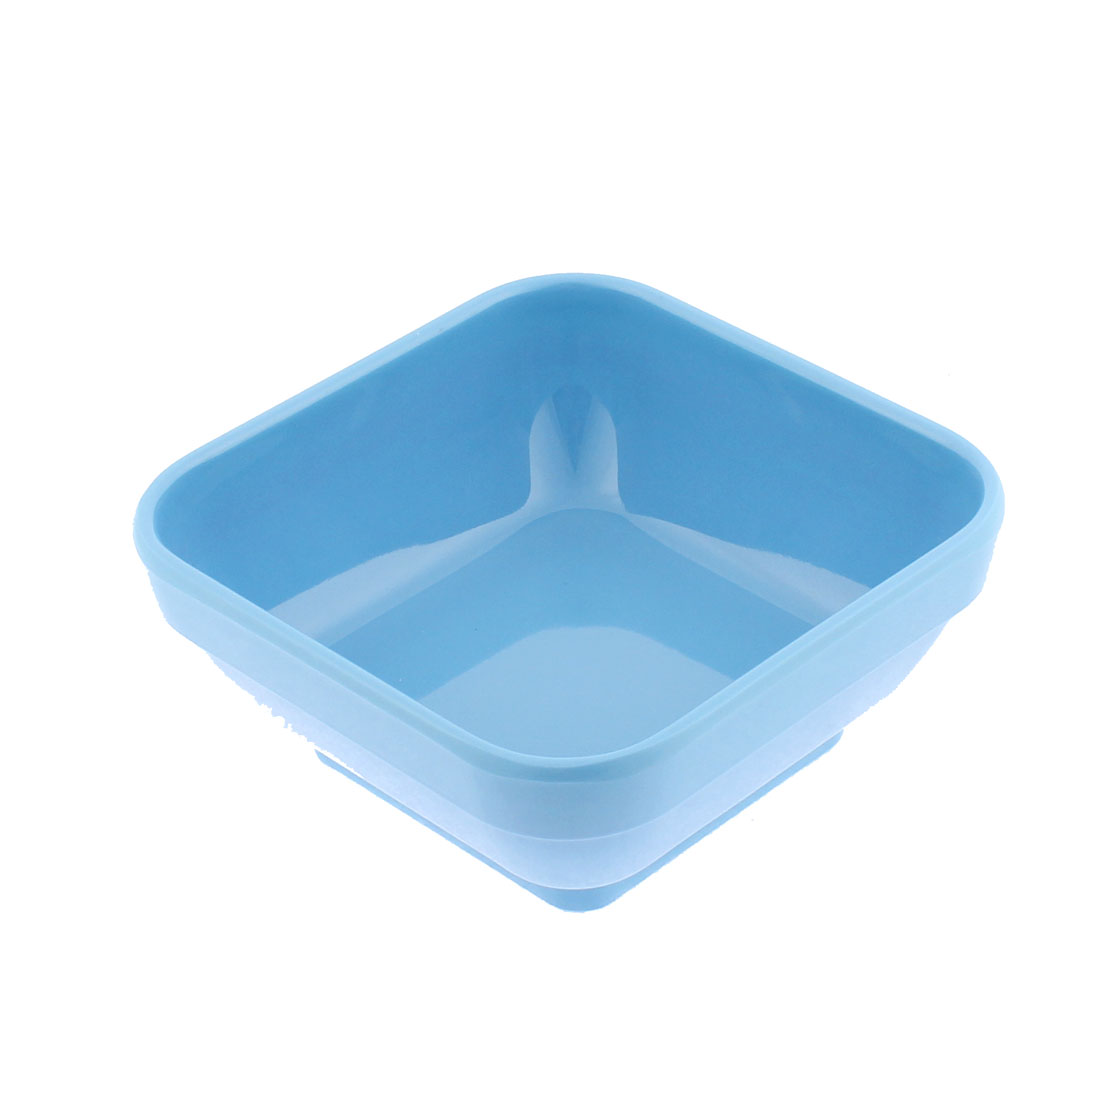 Kitchen Plastic Square Shaped Dessert Food Soup Serving Bowl Light Blue 12 x 12cm